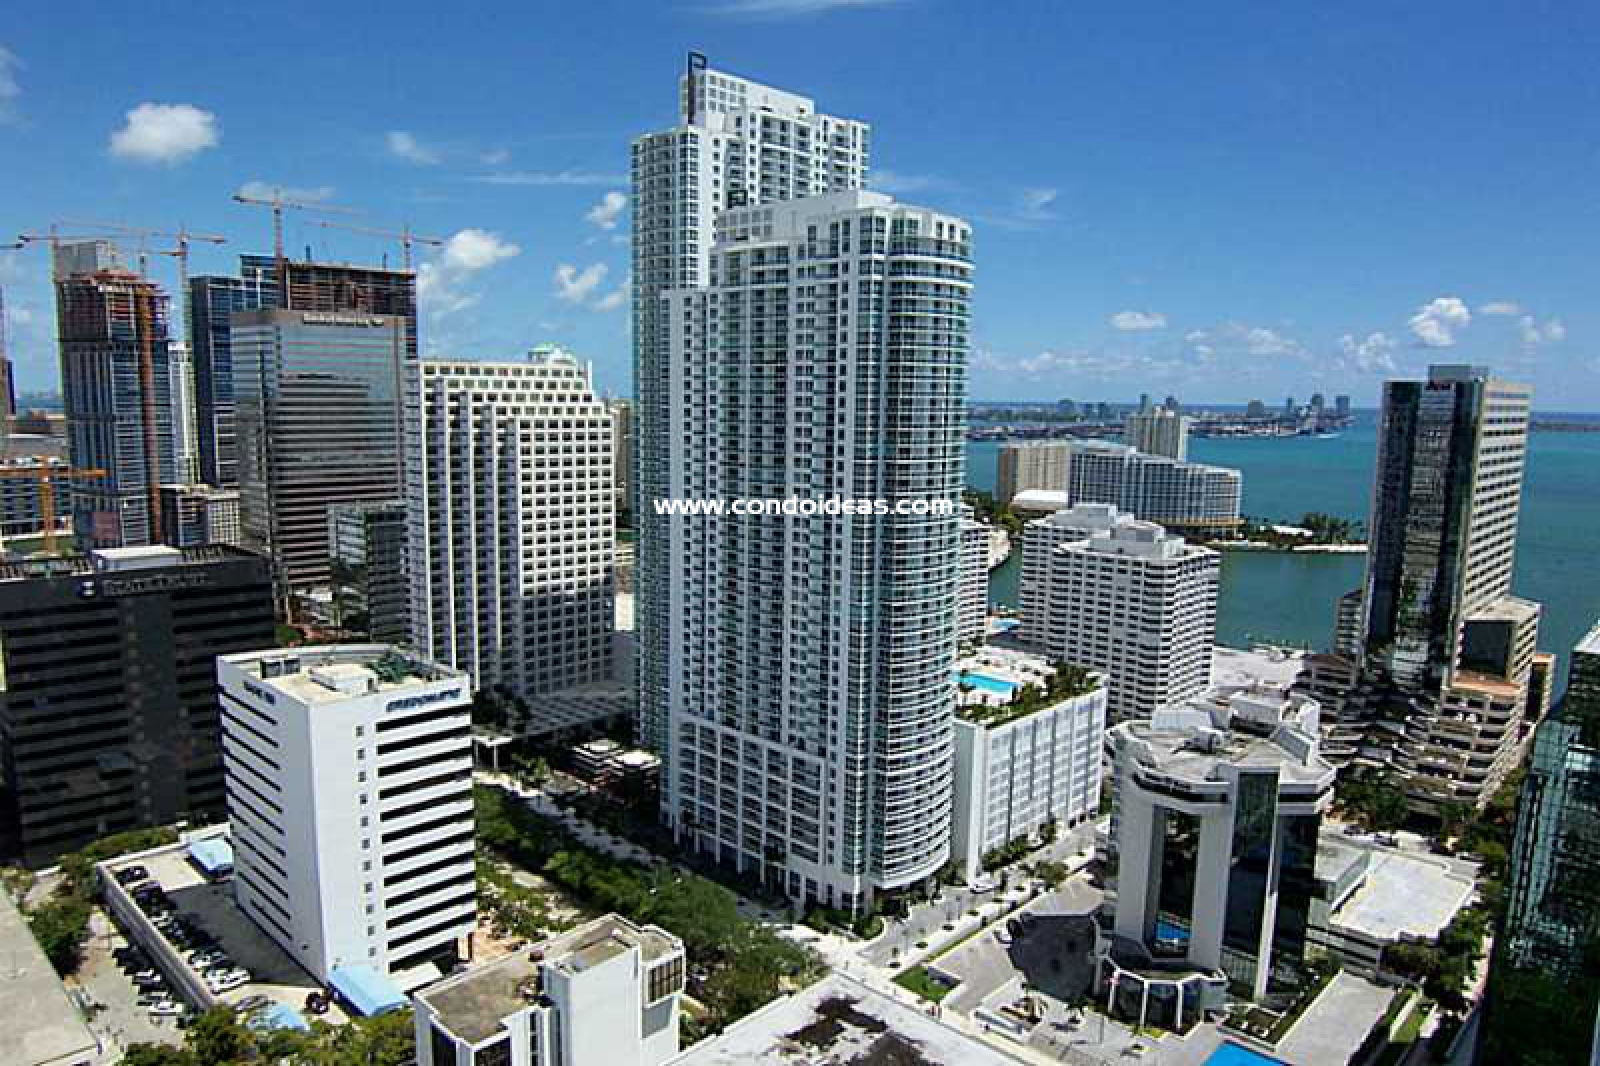 The Plaza Tower I condo